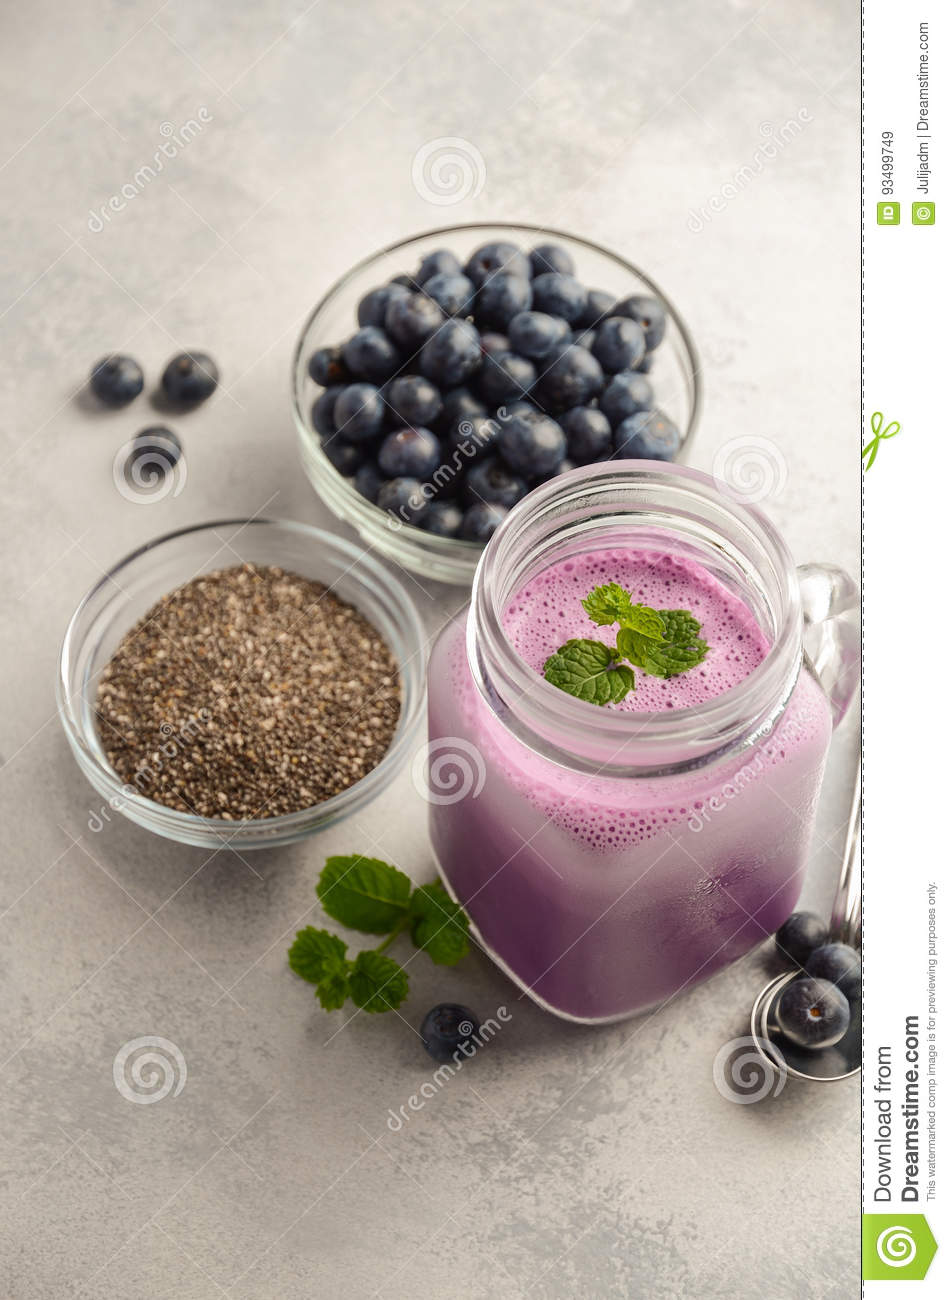 Blueberry smoothie with chia seeds in glass jar on grey concrete background